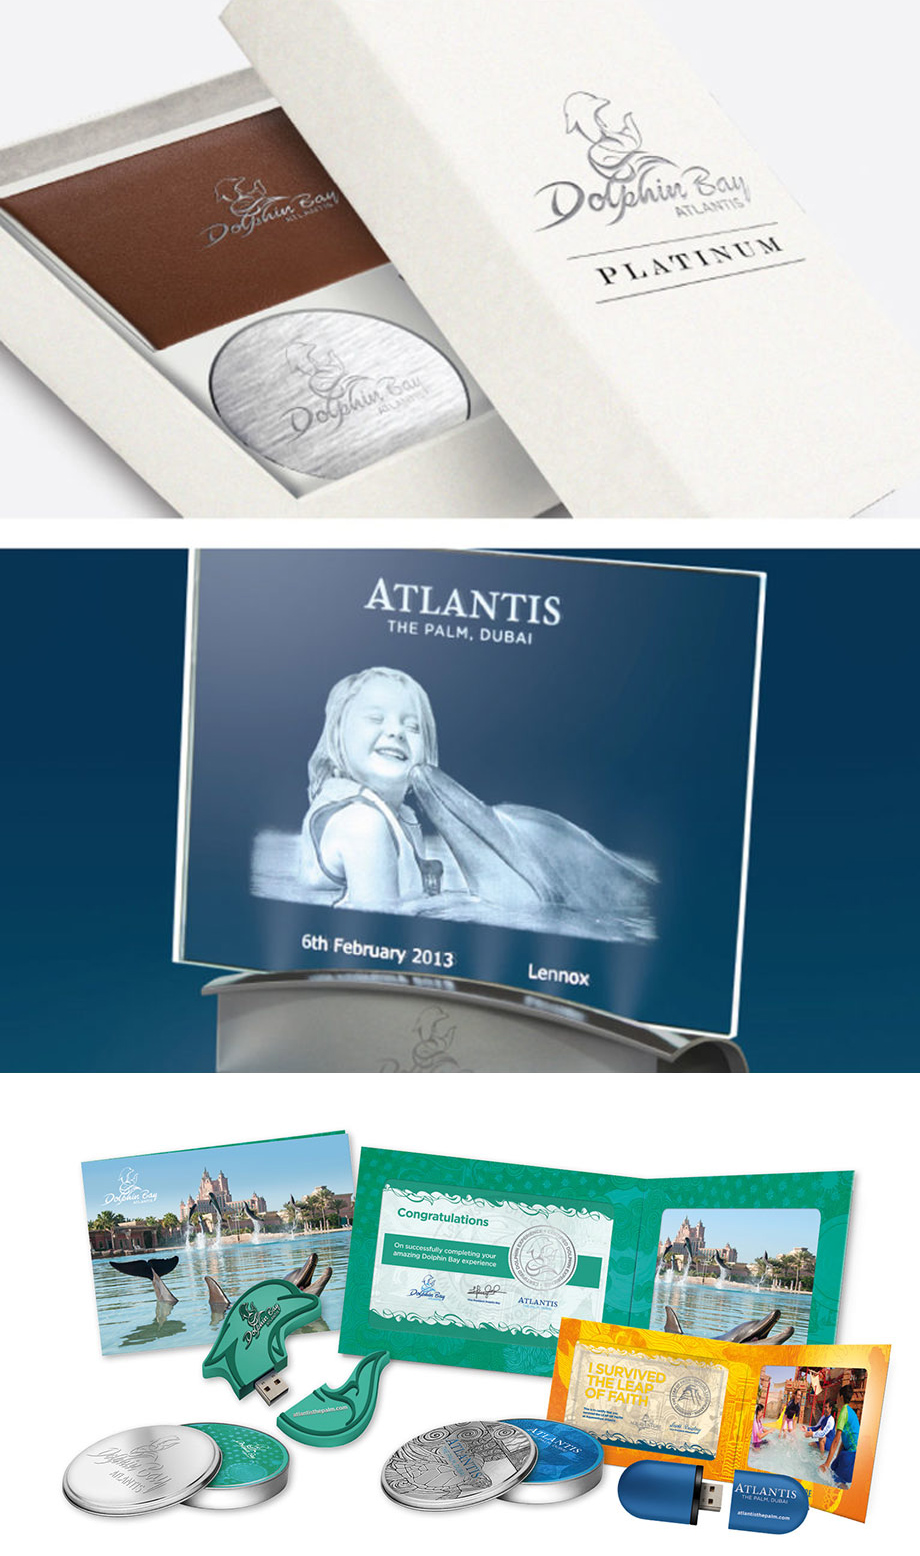 Premium photo experience products for Atlantis, The Palm, Dubai - created by Katapult